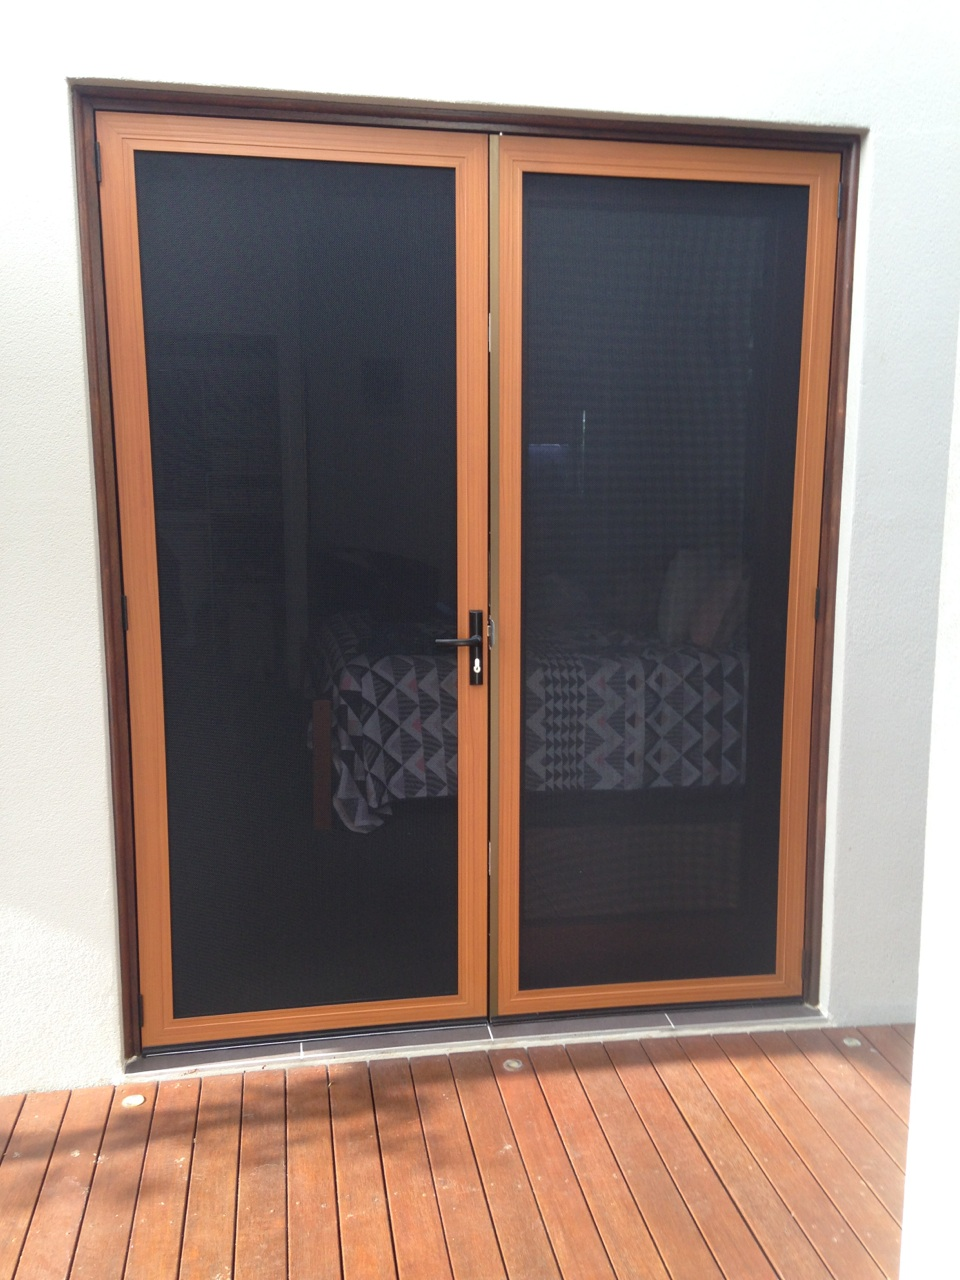 SecureView Double Doors With Timber Look Frame